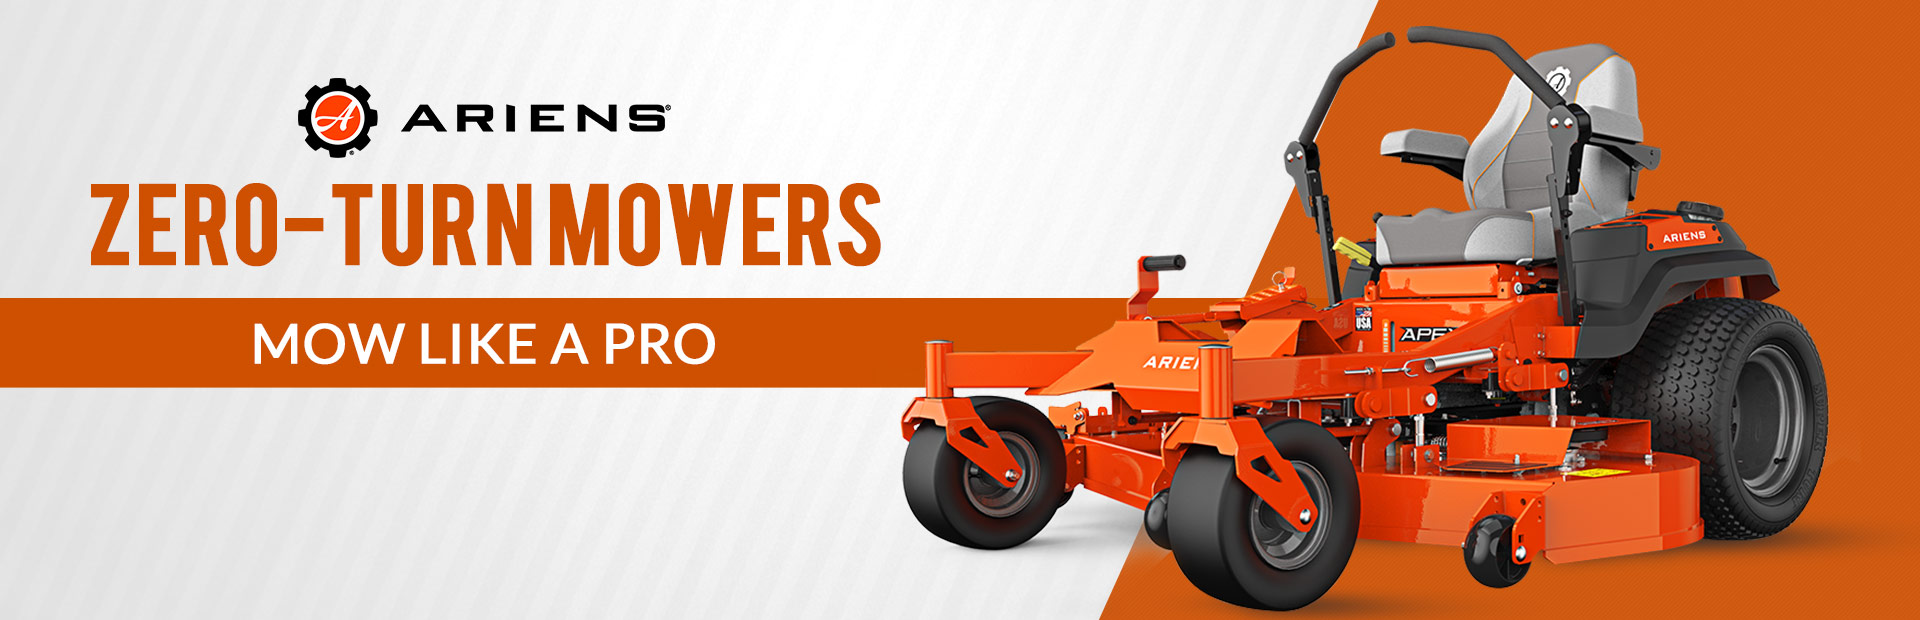 Ariens Zero-Turn Mowers: Mow like a pro!